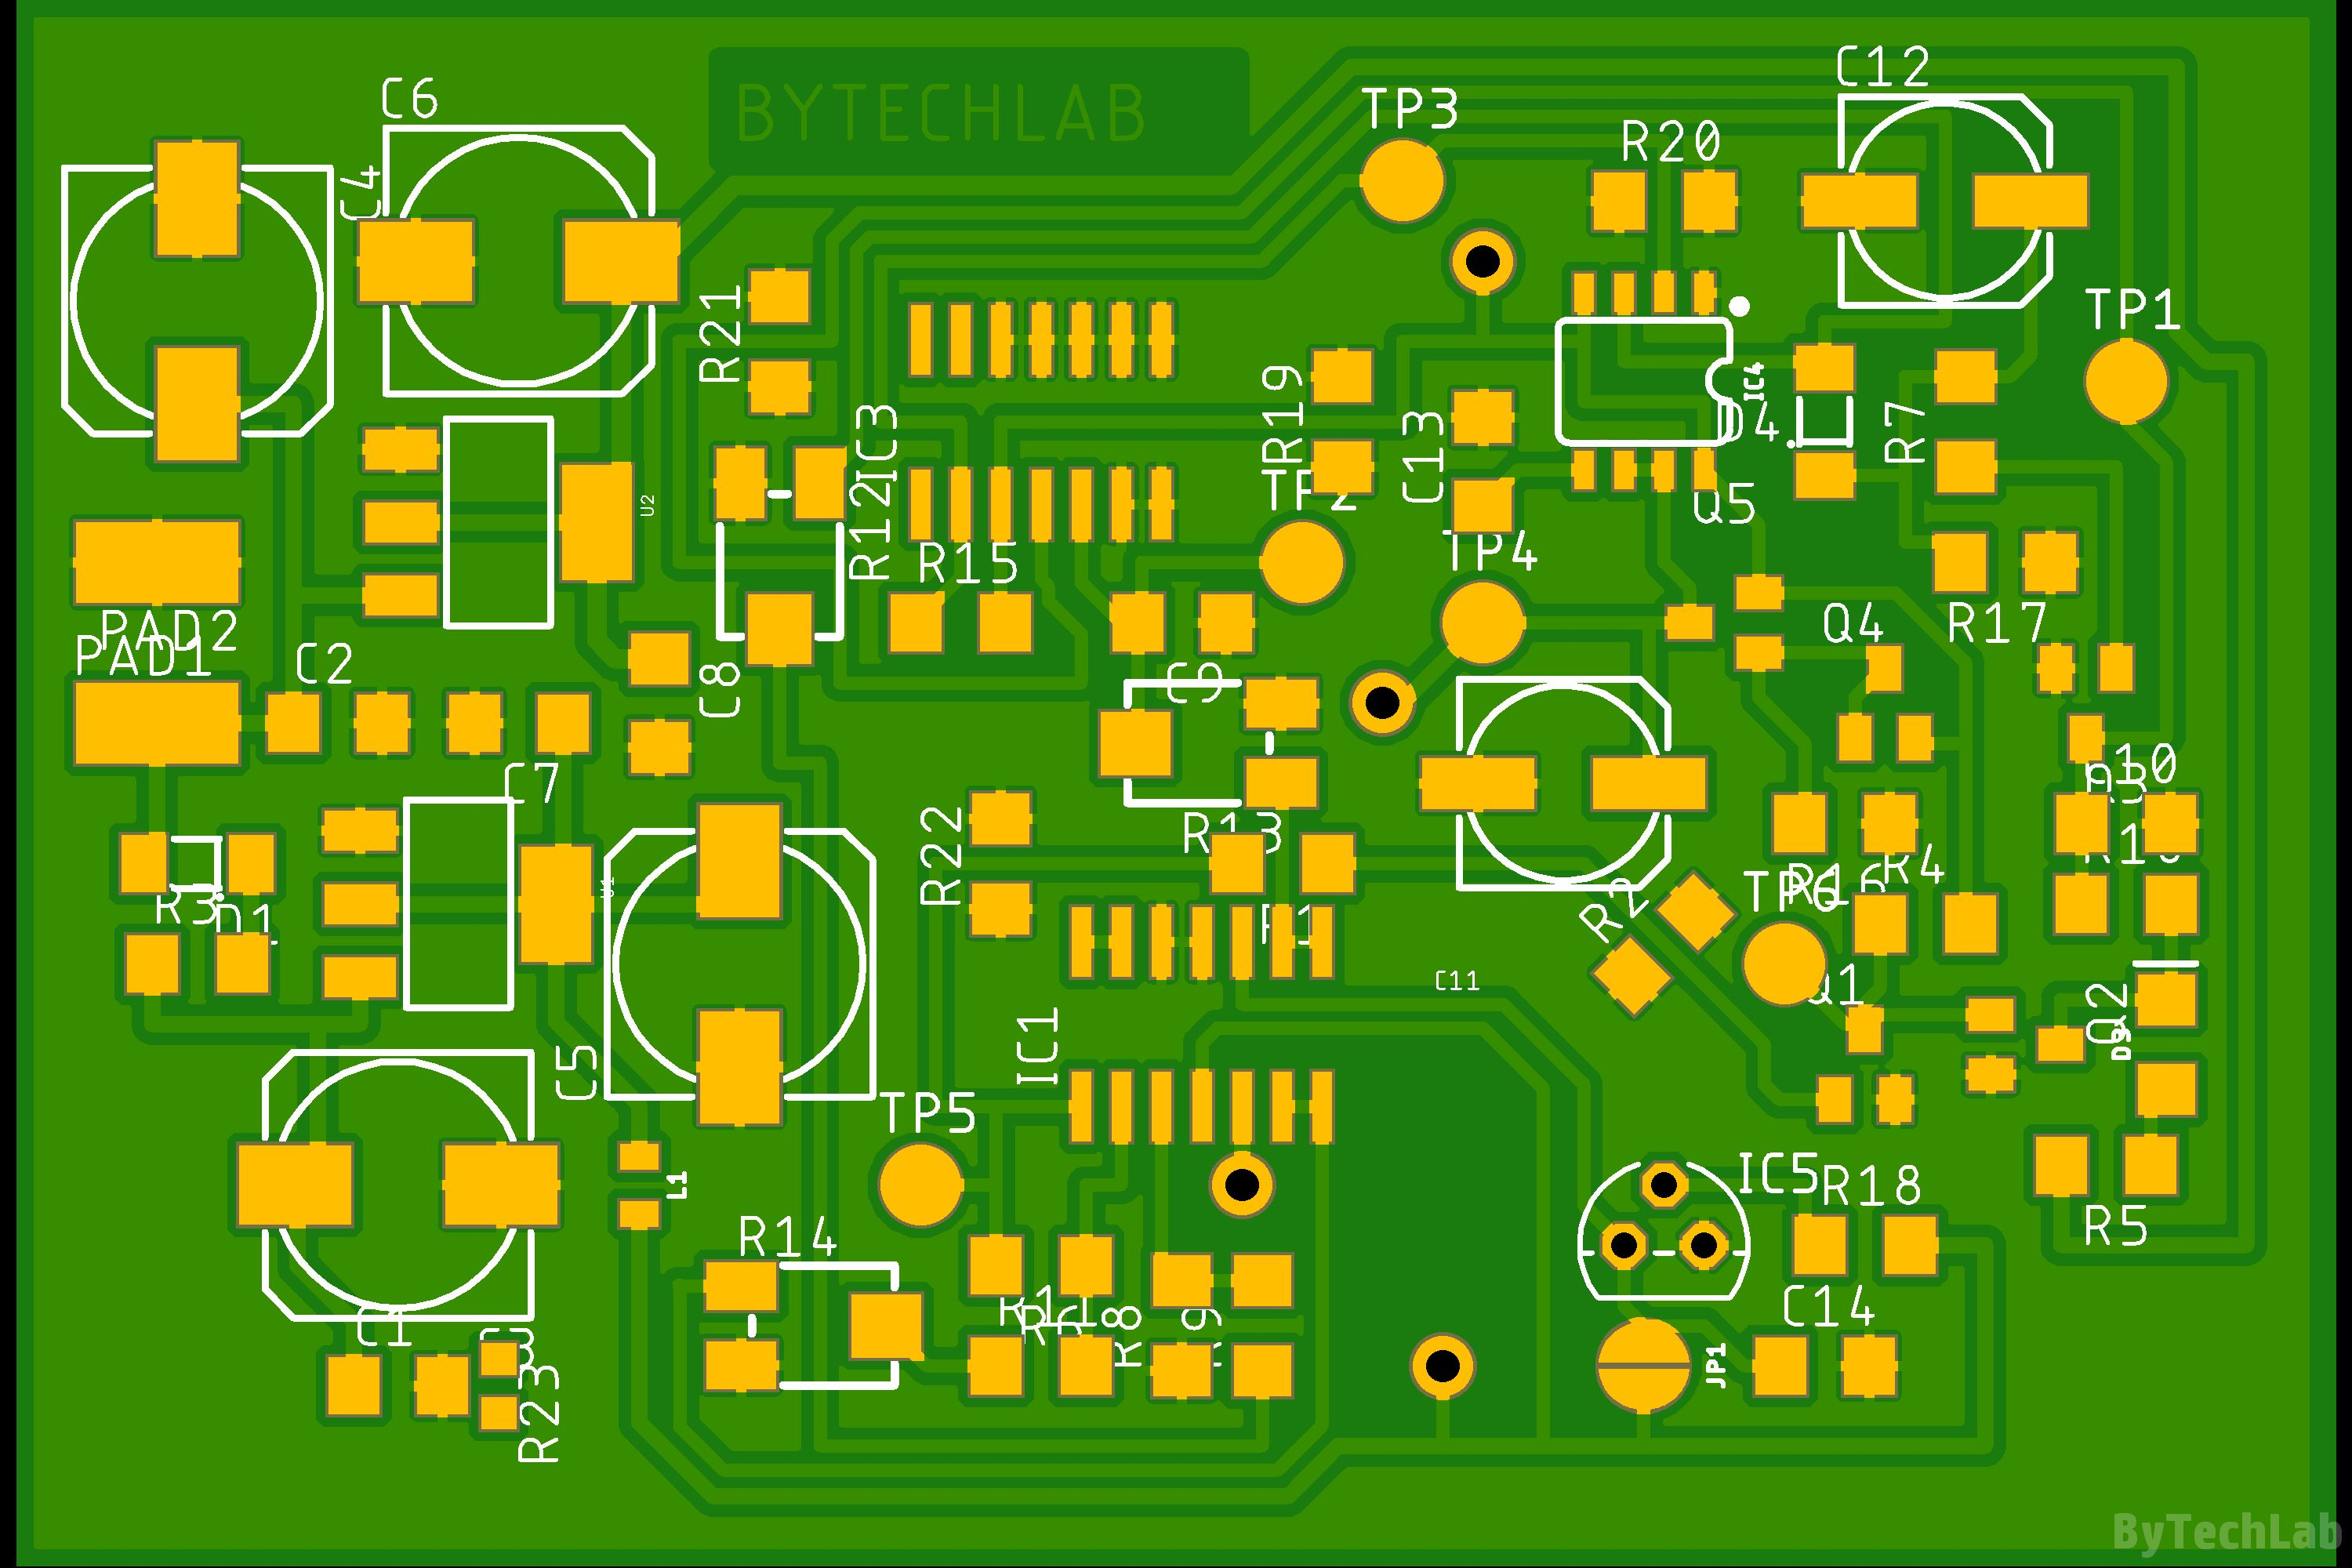 An Led You Can Blow Out Like A Candle Analog Circuit Bytechlab For Pcb Render Top View